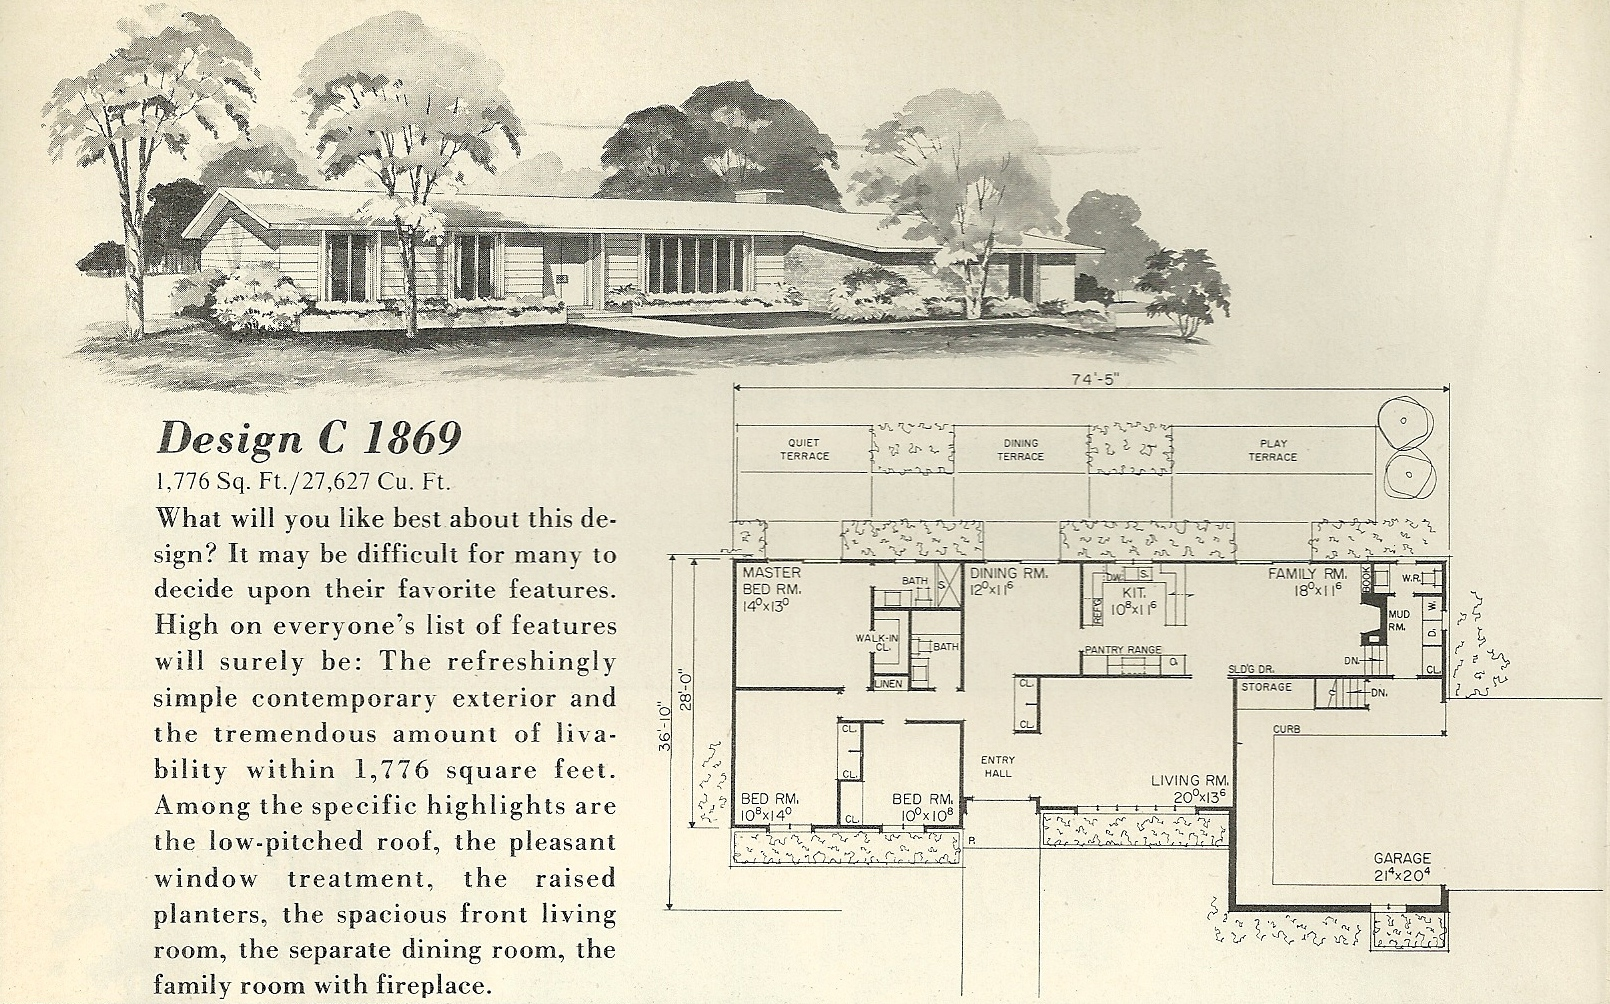 Vintage house plans 1869 antique alter ego for Mid century modern plans